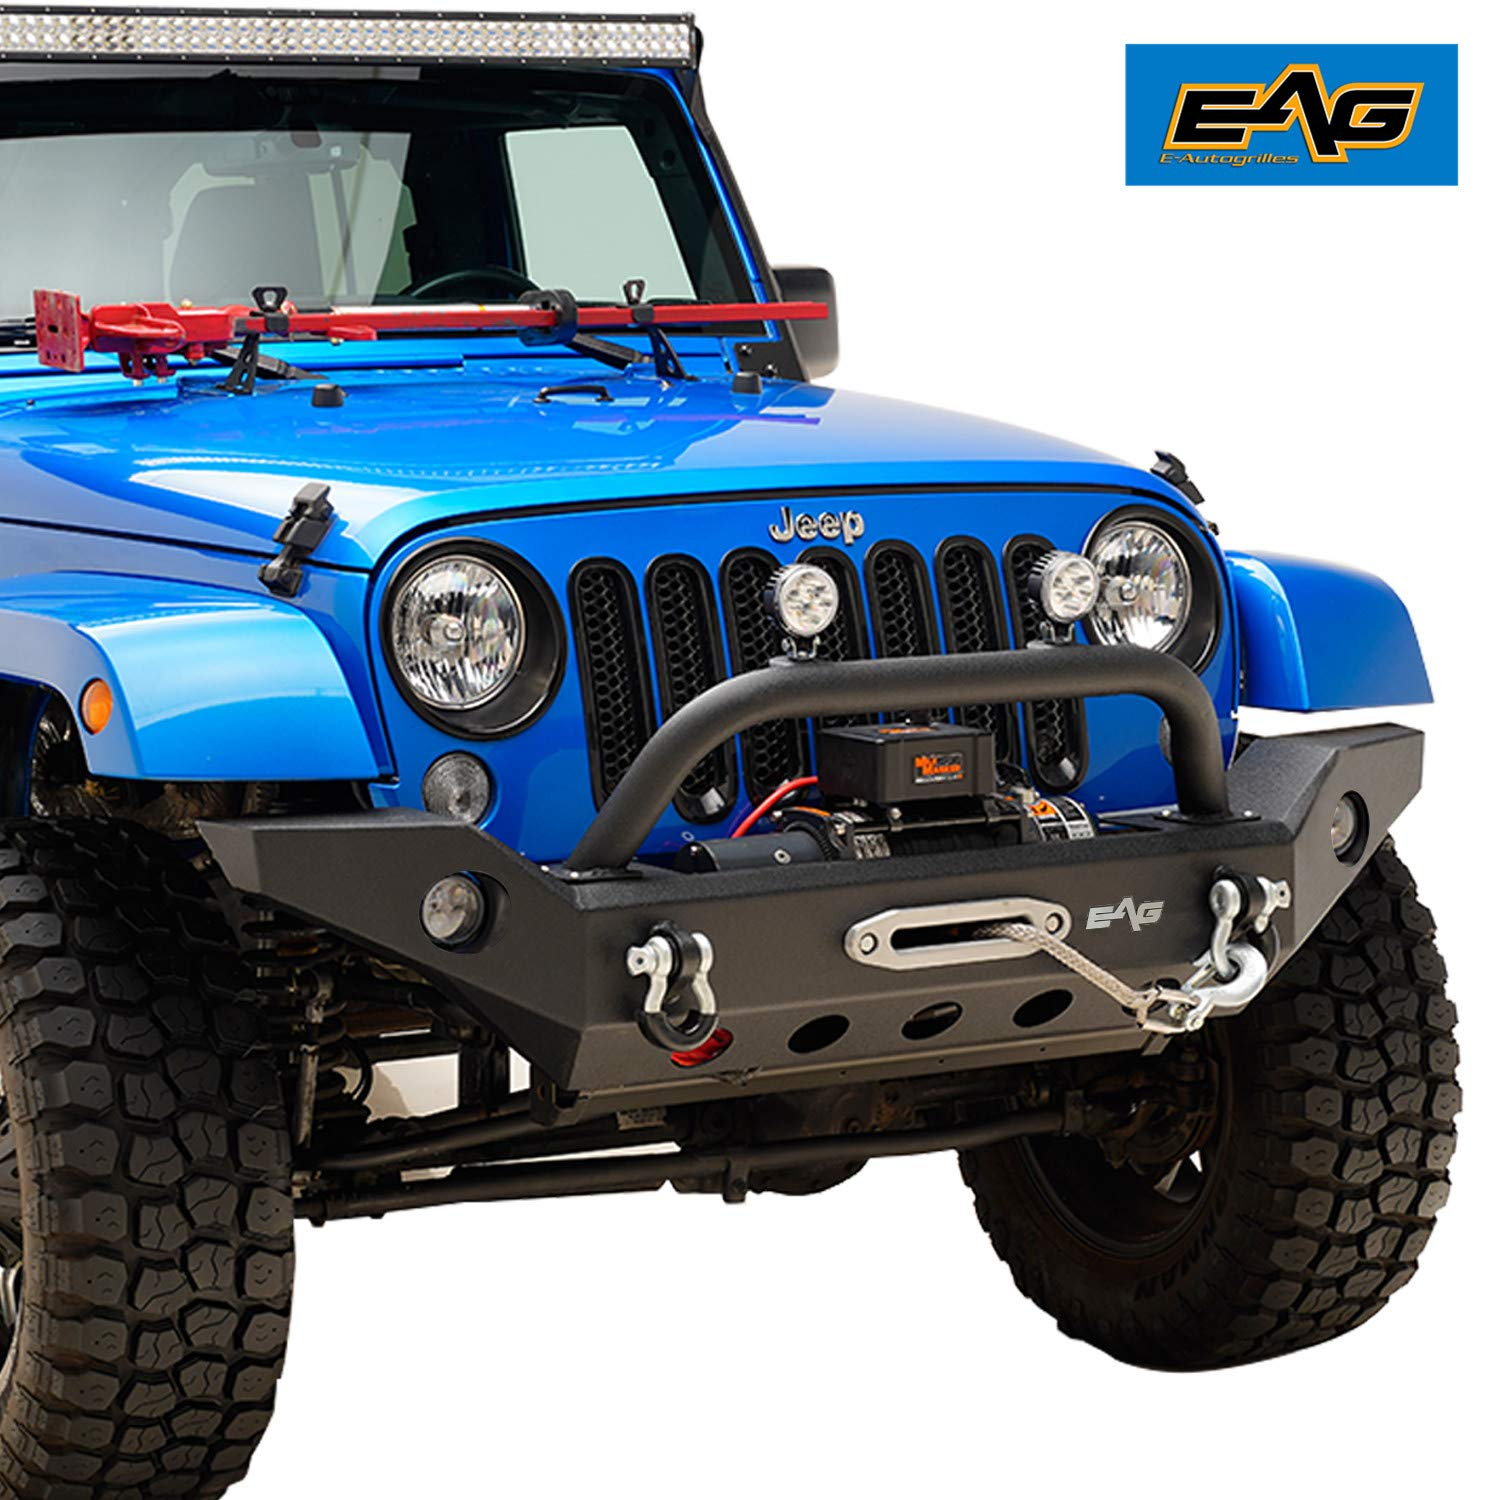 Jeep Wrangler Jk Front Bumper >> Eag Front Bumper With Winch Plate And D Rings Black Textured Fit For 07 18 Jeep Wrangler Jk Offroad